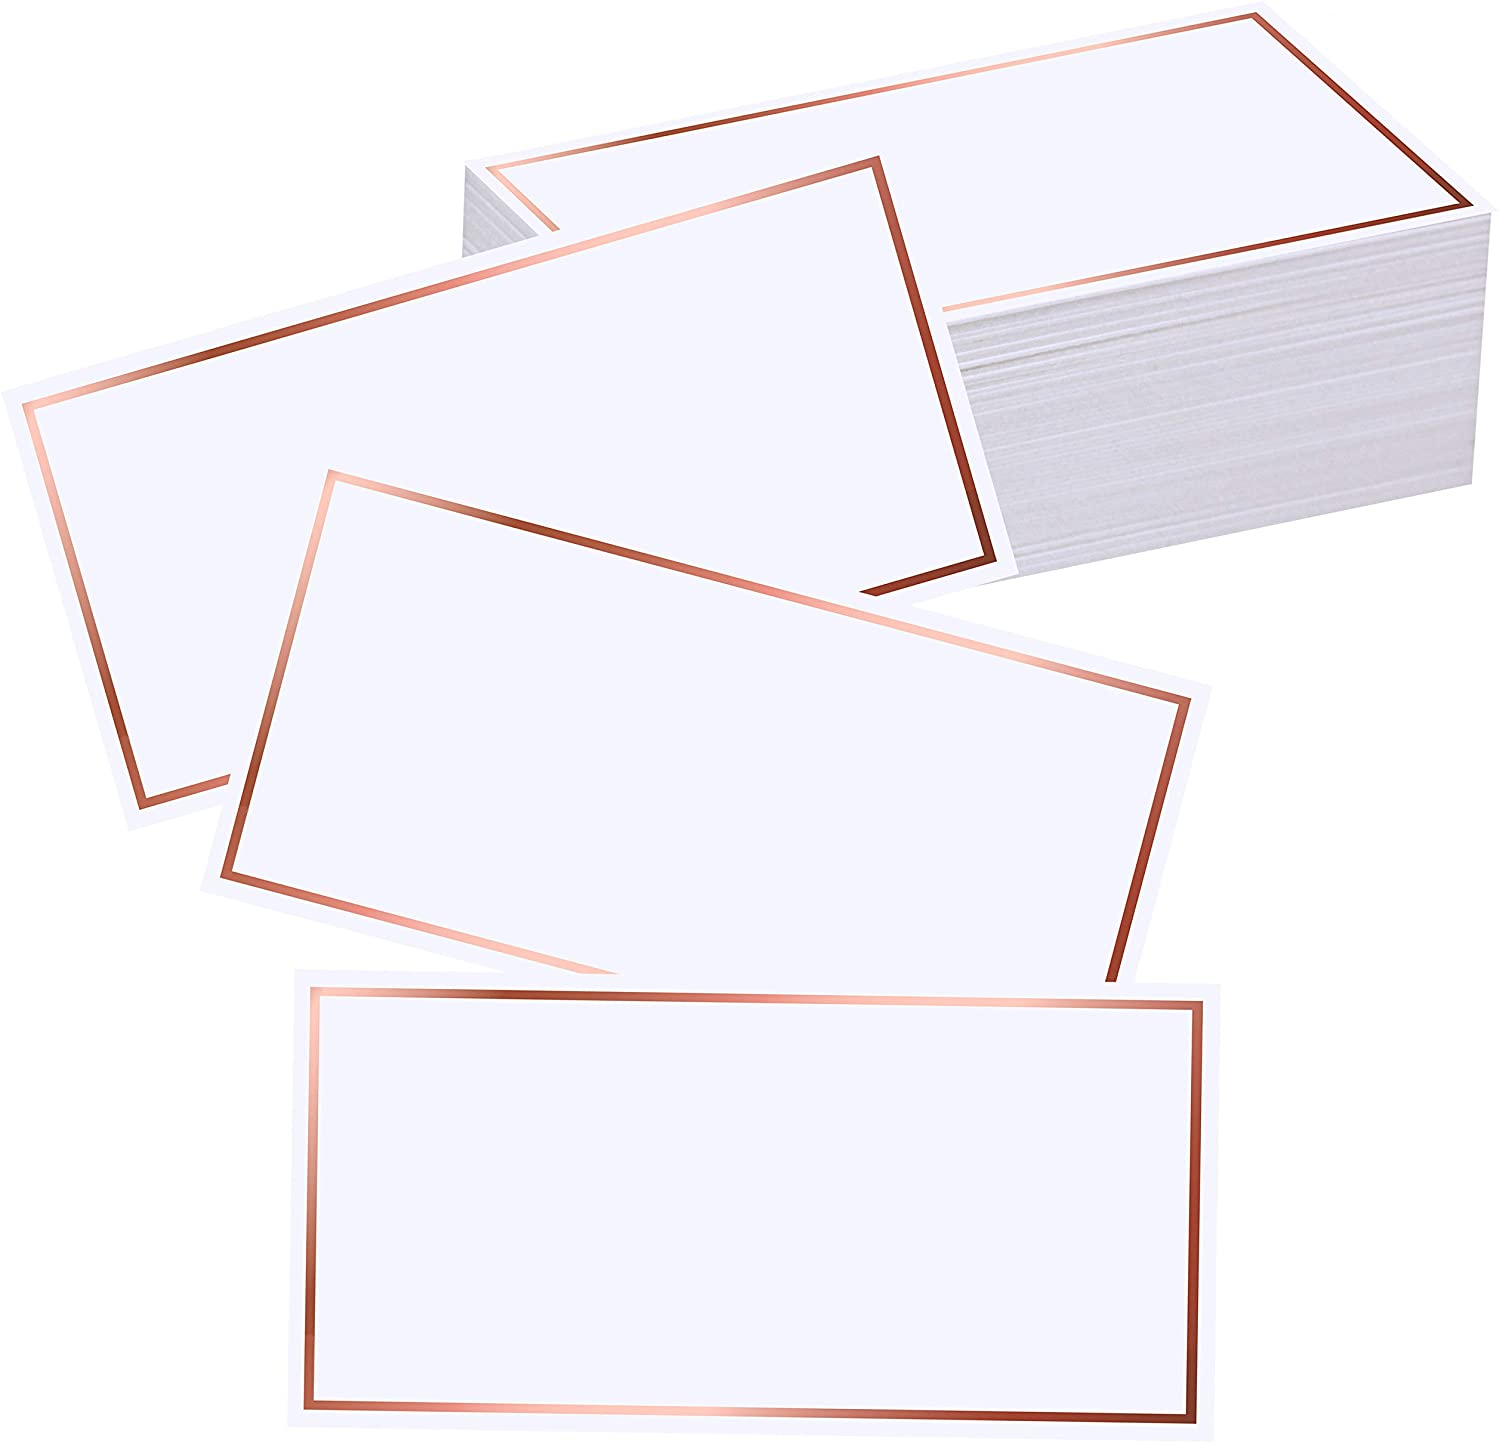 EXQUISS 50 Pcs Rose Gold Foil Border Place Cards Name Tags Seating Cards Blank Place Cards White Cards Reserved Cards Perfect for Wedding Reception Party Birthday Baby Shower Event - 4 x 2 inches